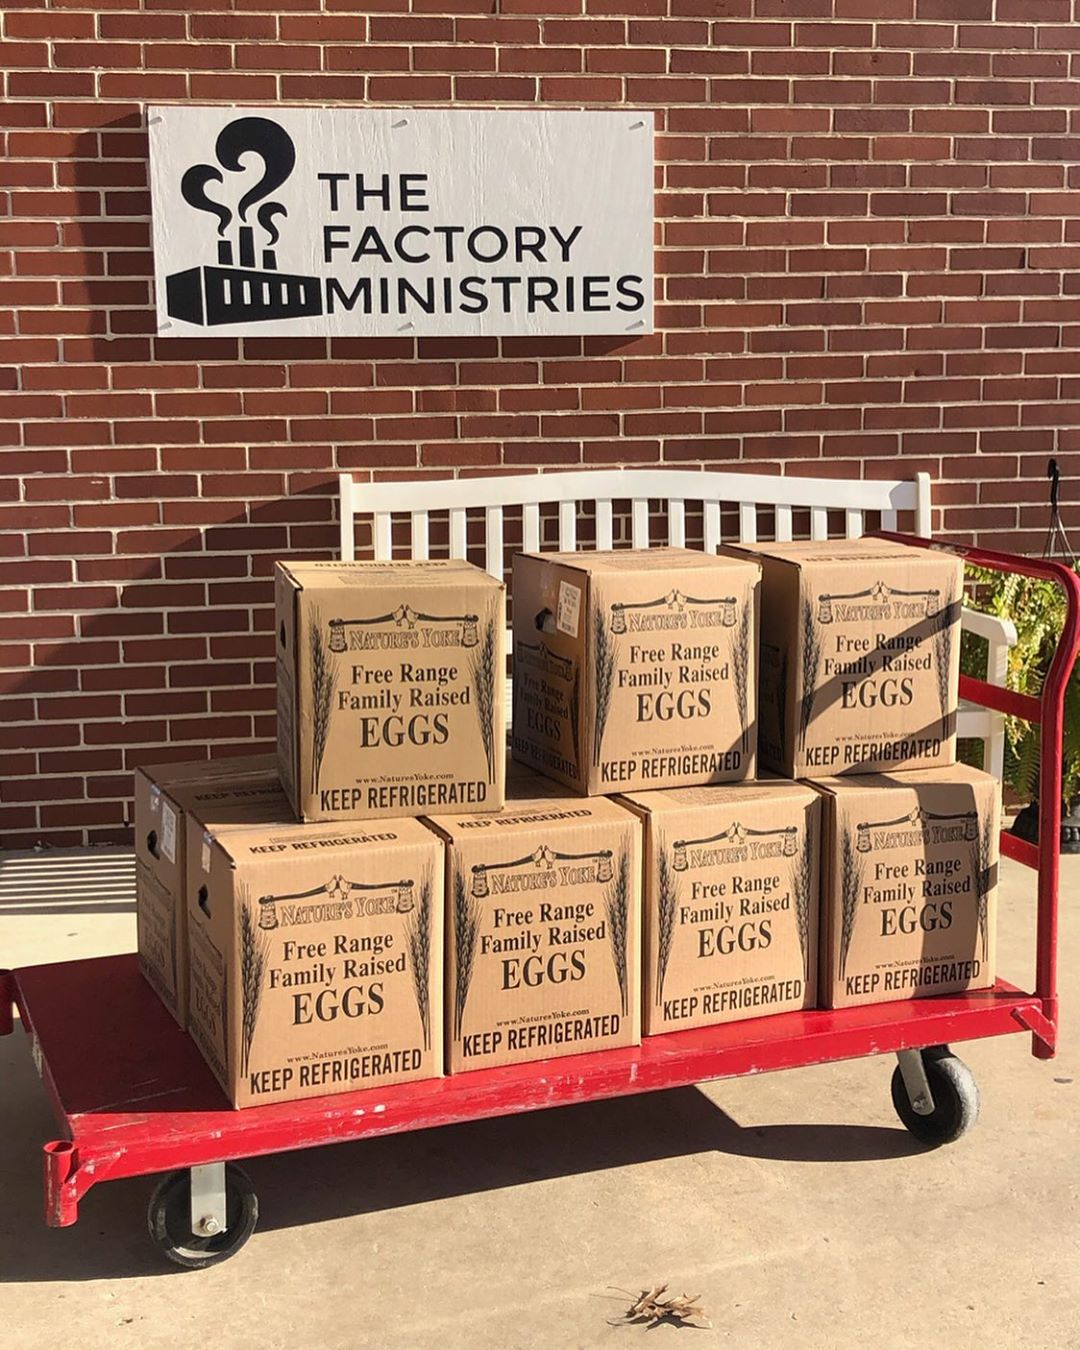 Thank you to Westfield Eggs for donating 11 cases of eggs to The Factory Market! If you would like to help stock the shelves and prepare for the likely increase of food needs in our community, The Factory Ministries is accepting food donations at the TCC on Friday from 9AM-12PM. Thank you for supporting the PV community through this time!